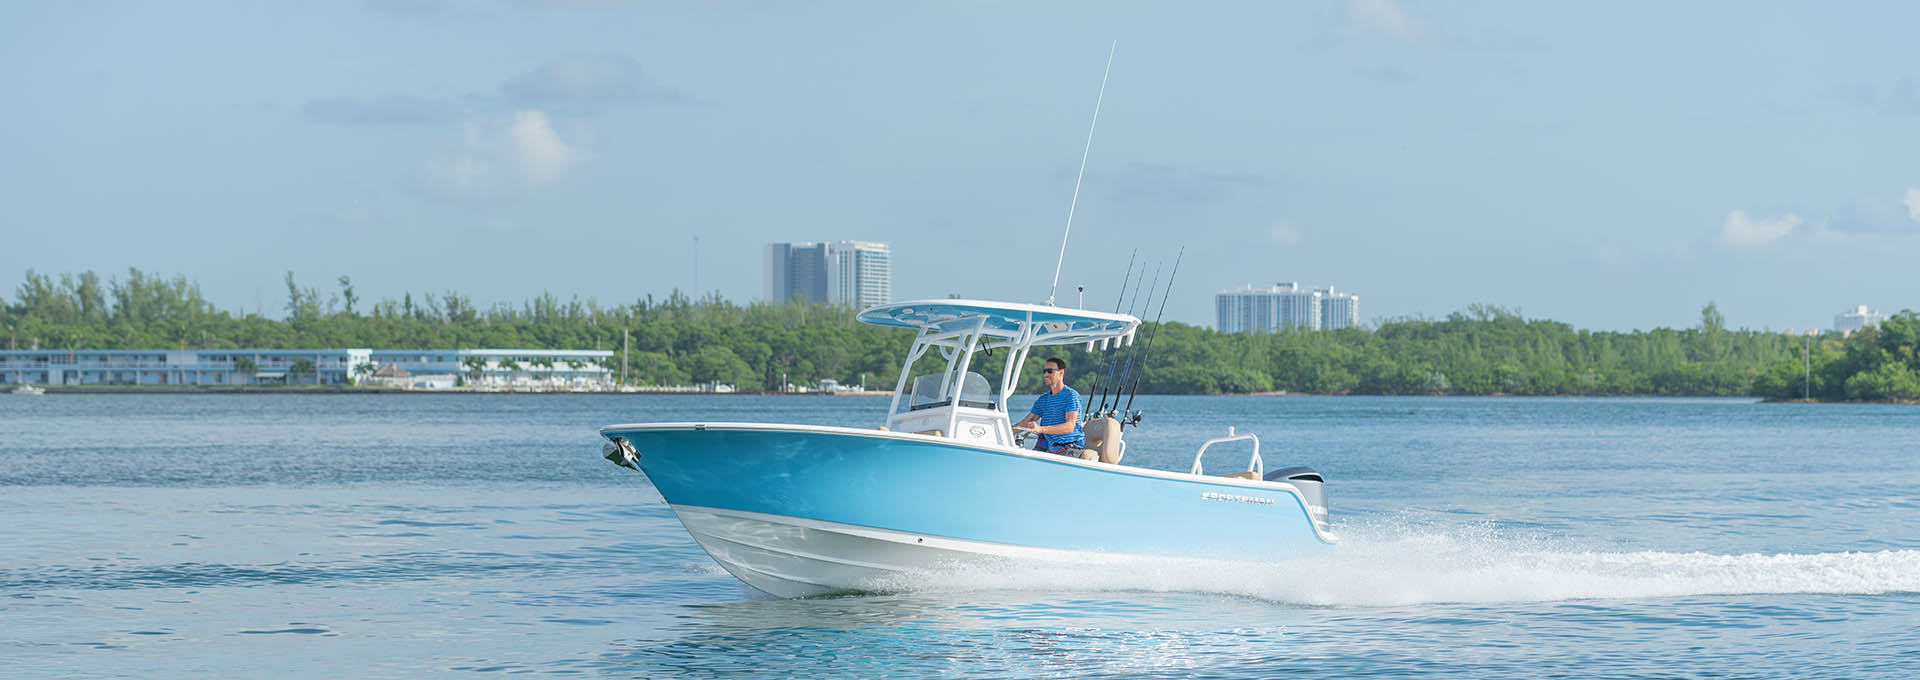 Slide show of images of the Heritage 241 Center Console. This is image number 1.